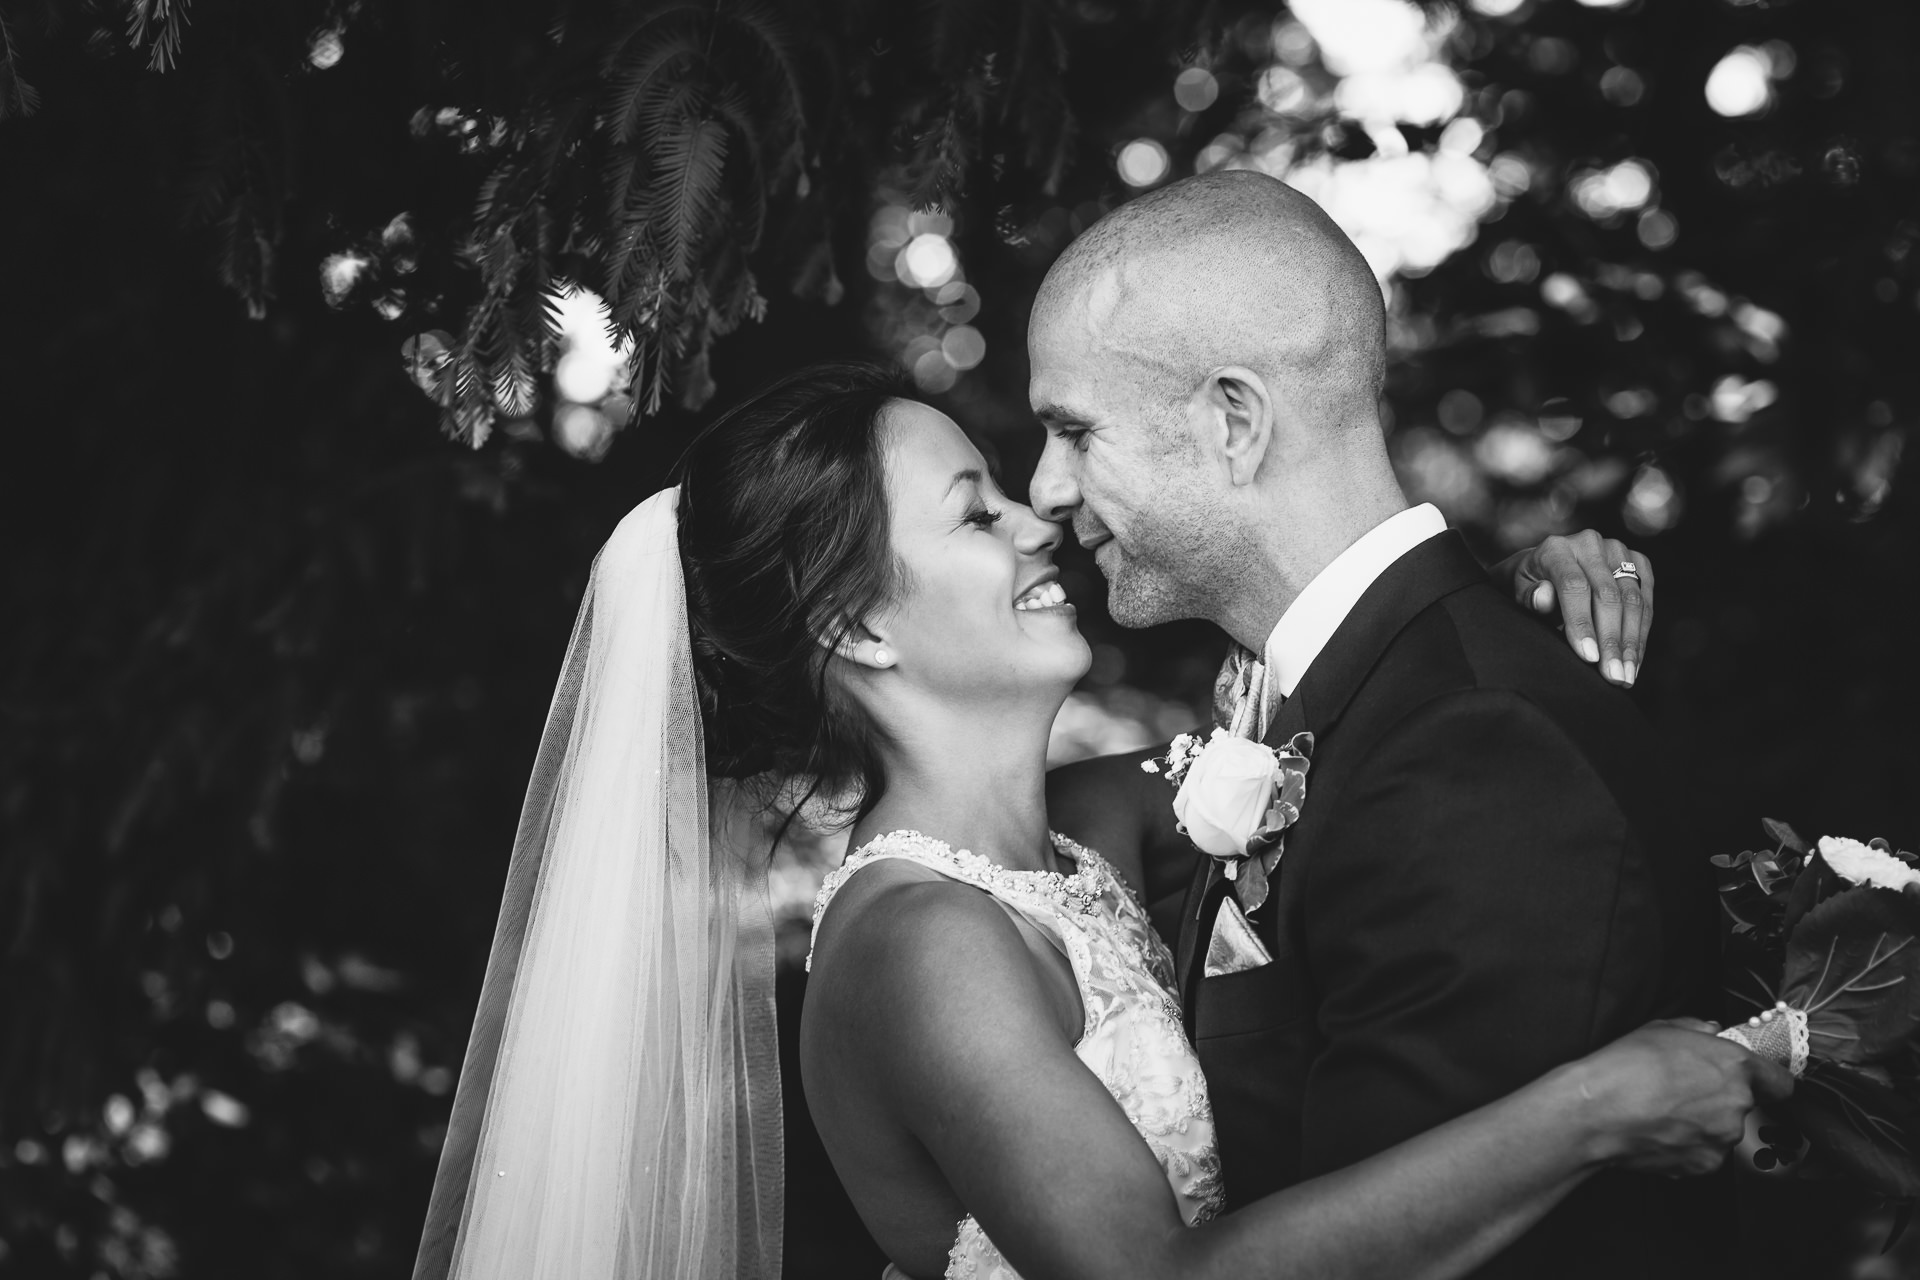 WEDDING PHOTOGRAPHY at inglewood manor with bride and groom touching noses